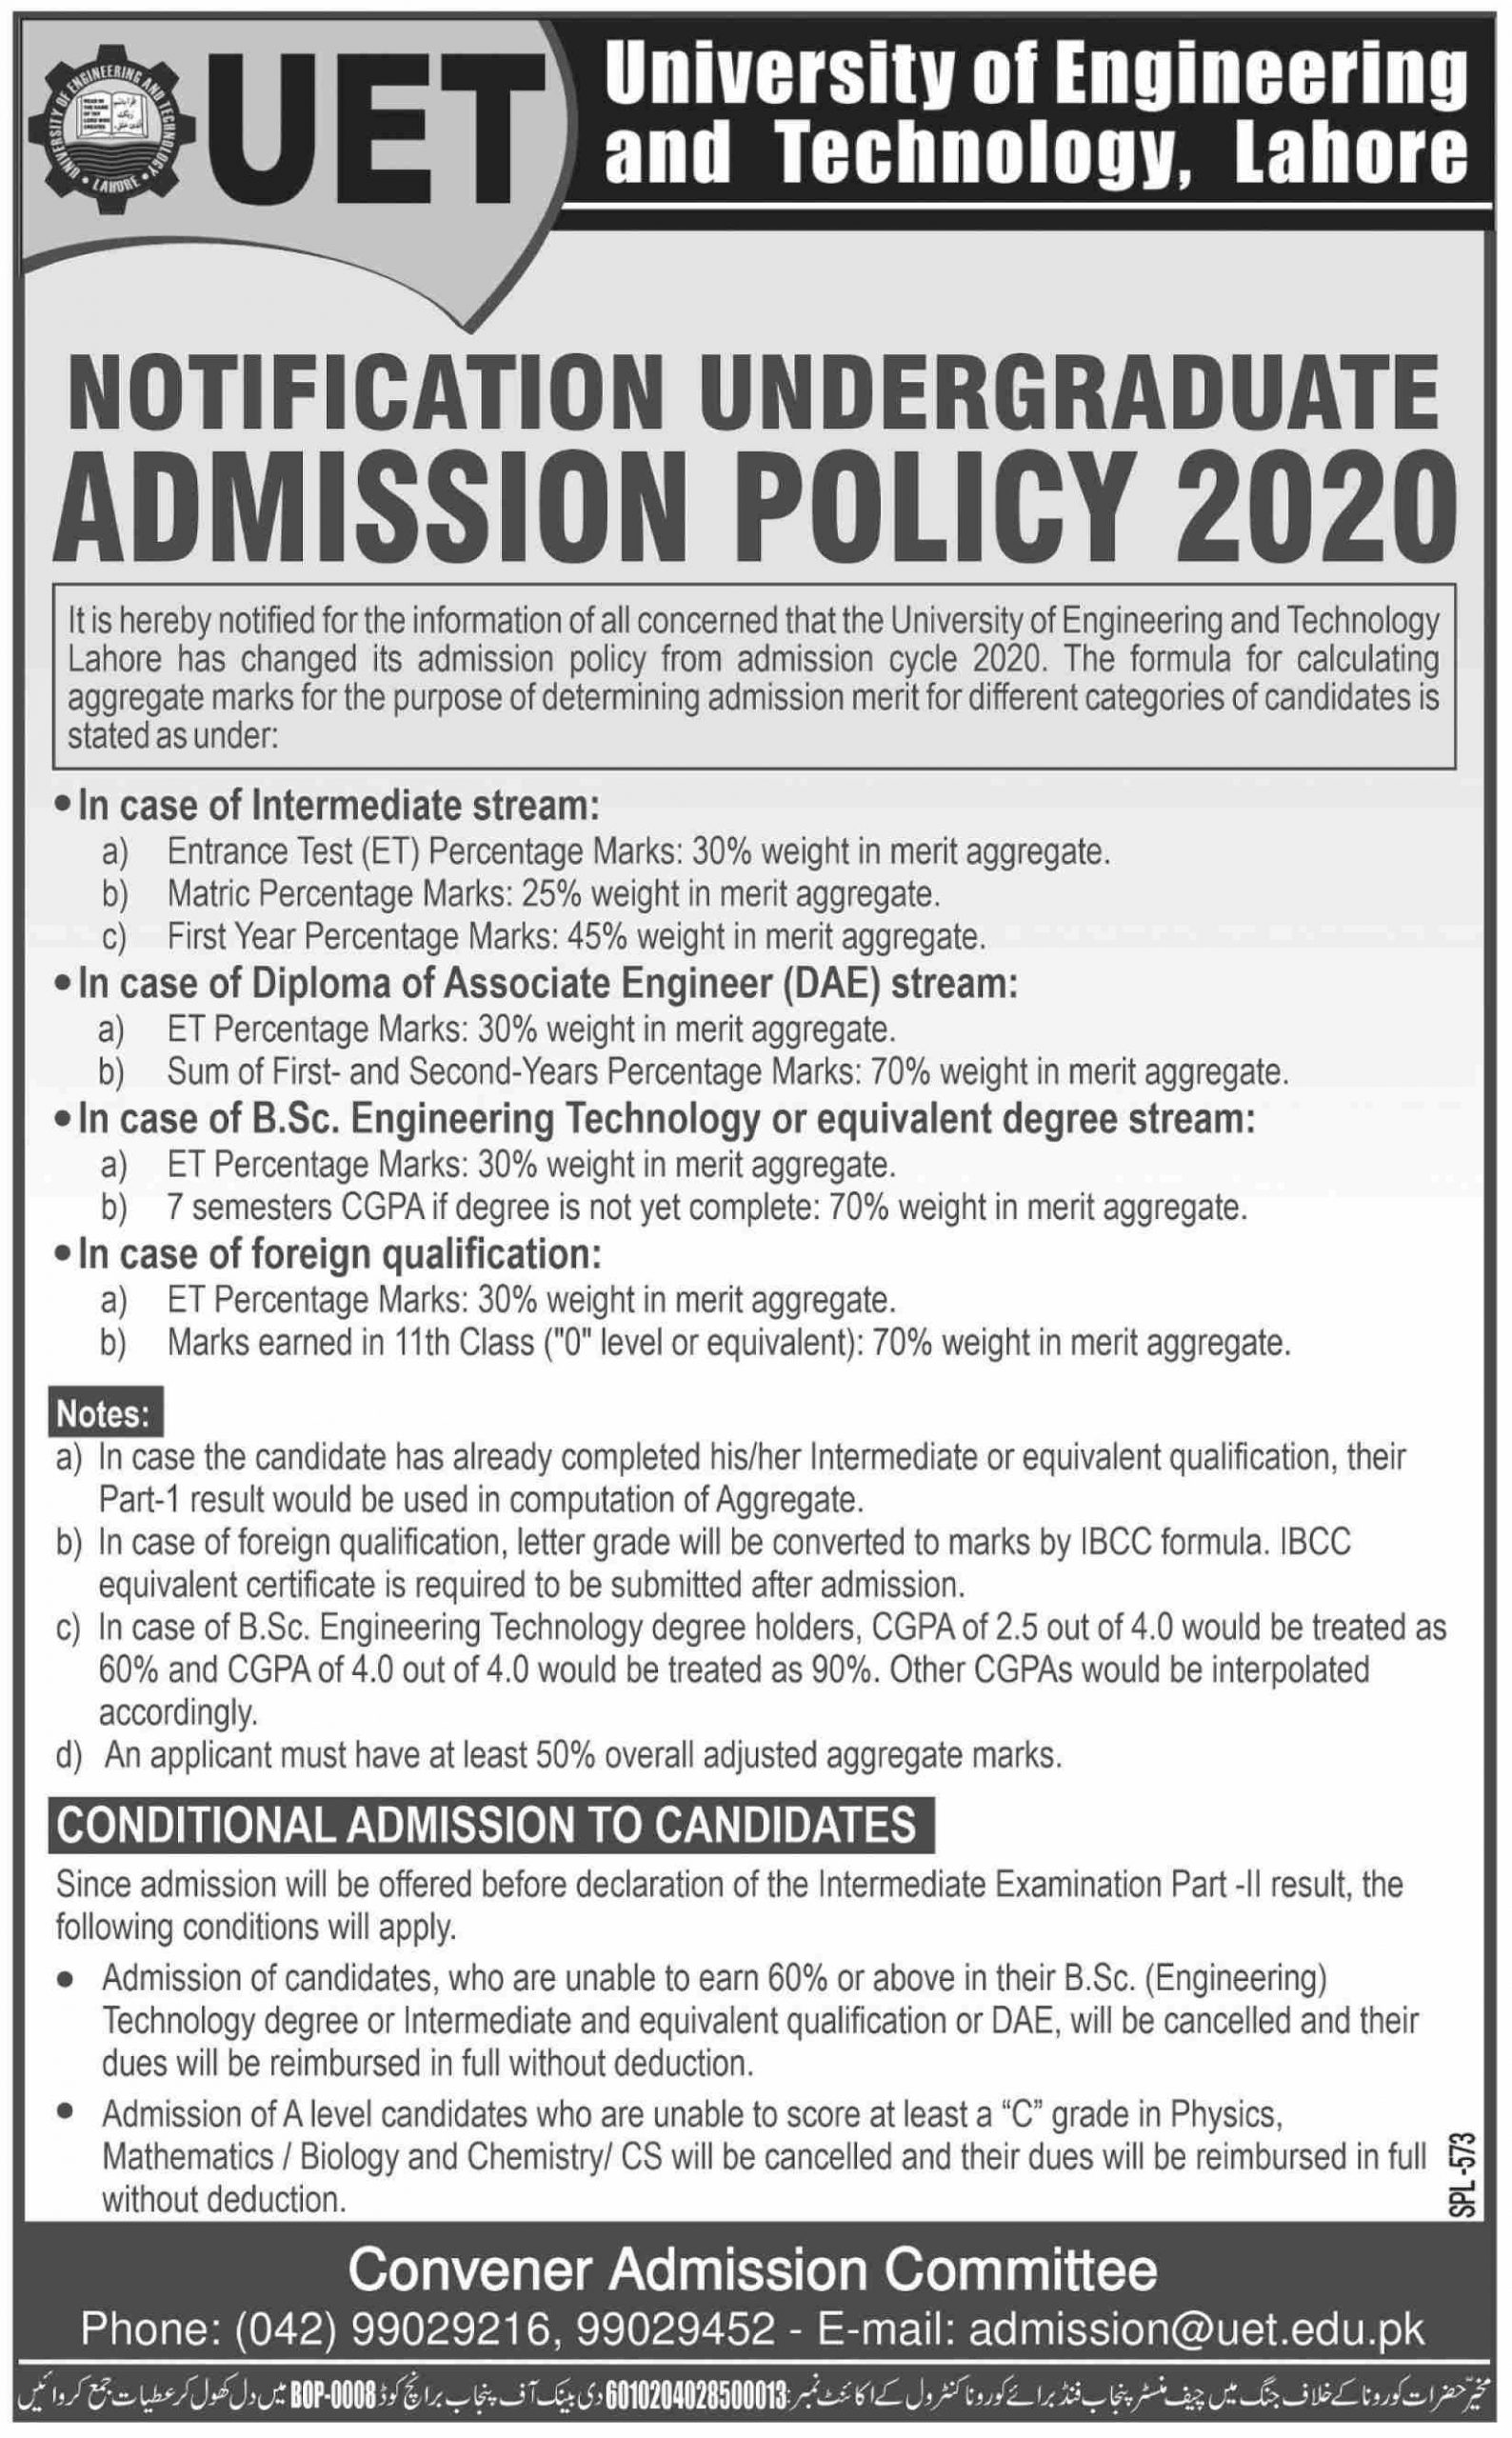 uet-lahore-admission-policy-2020